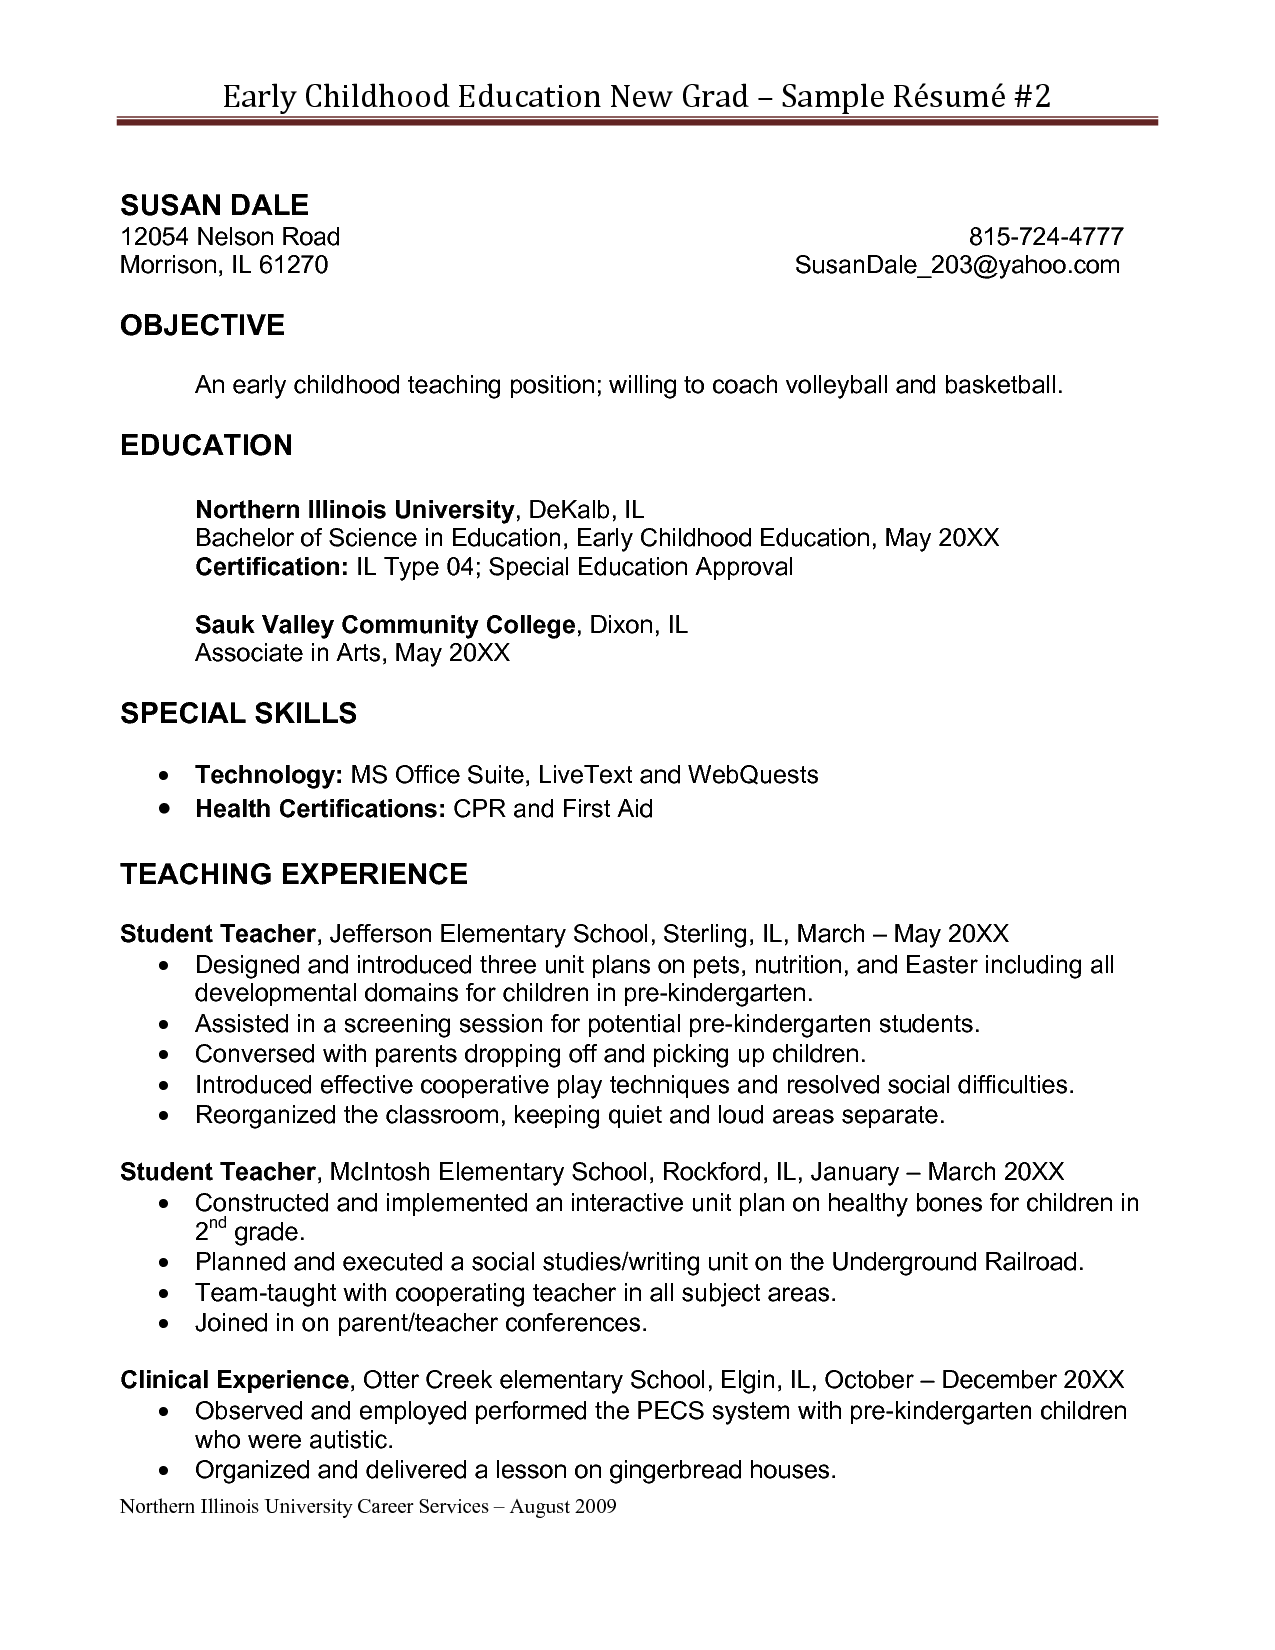 Autism Resume Early Childhood Education Resume Objective Shebs